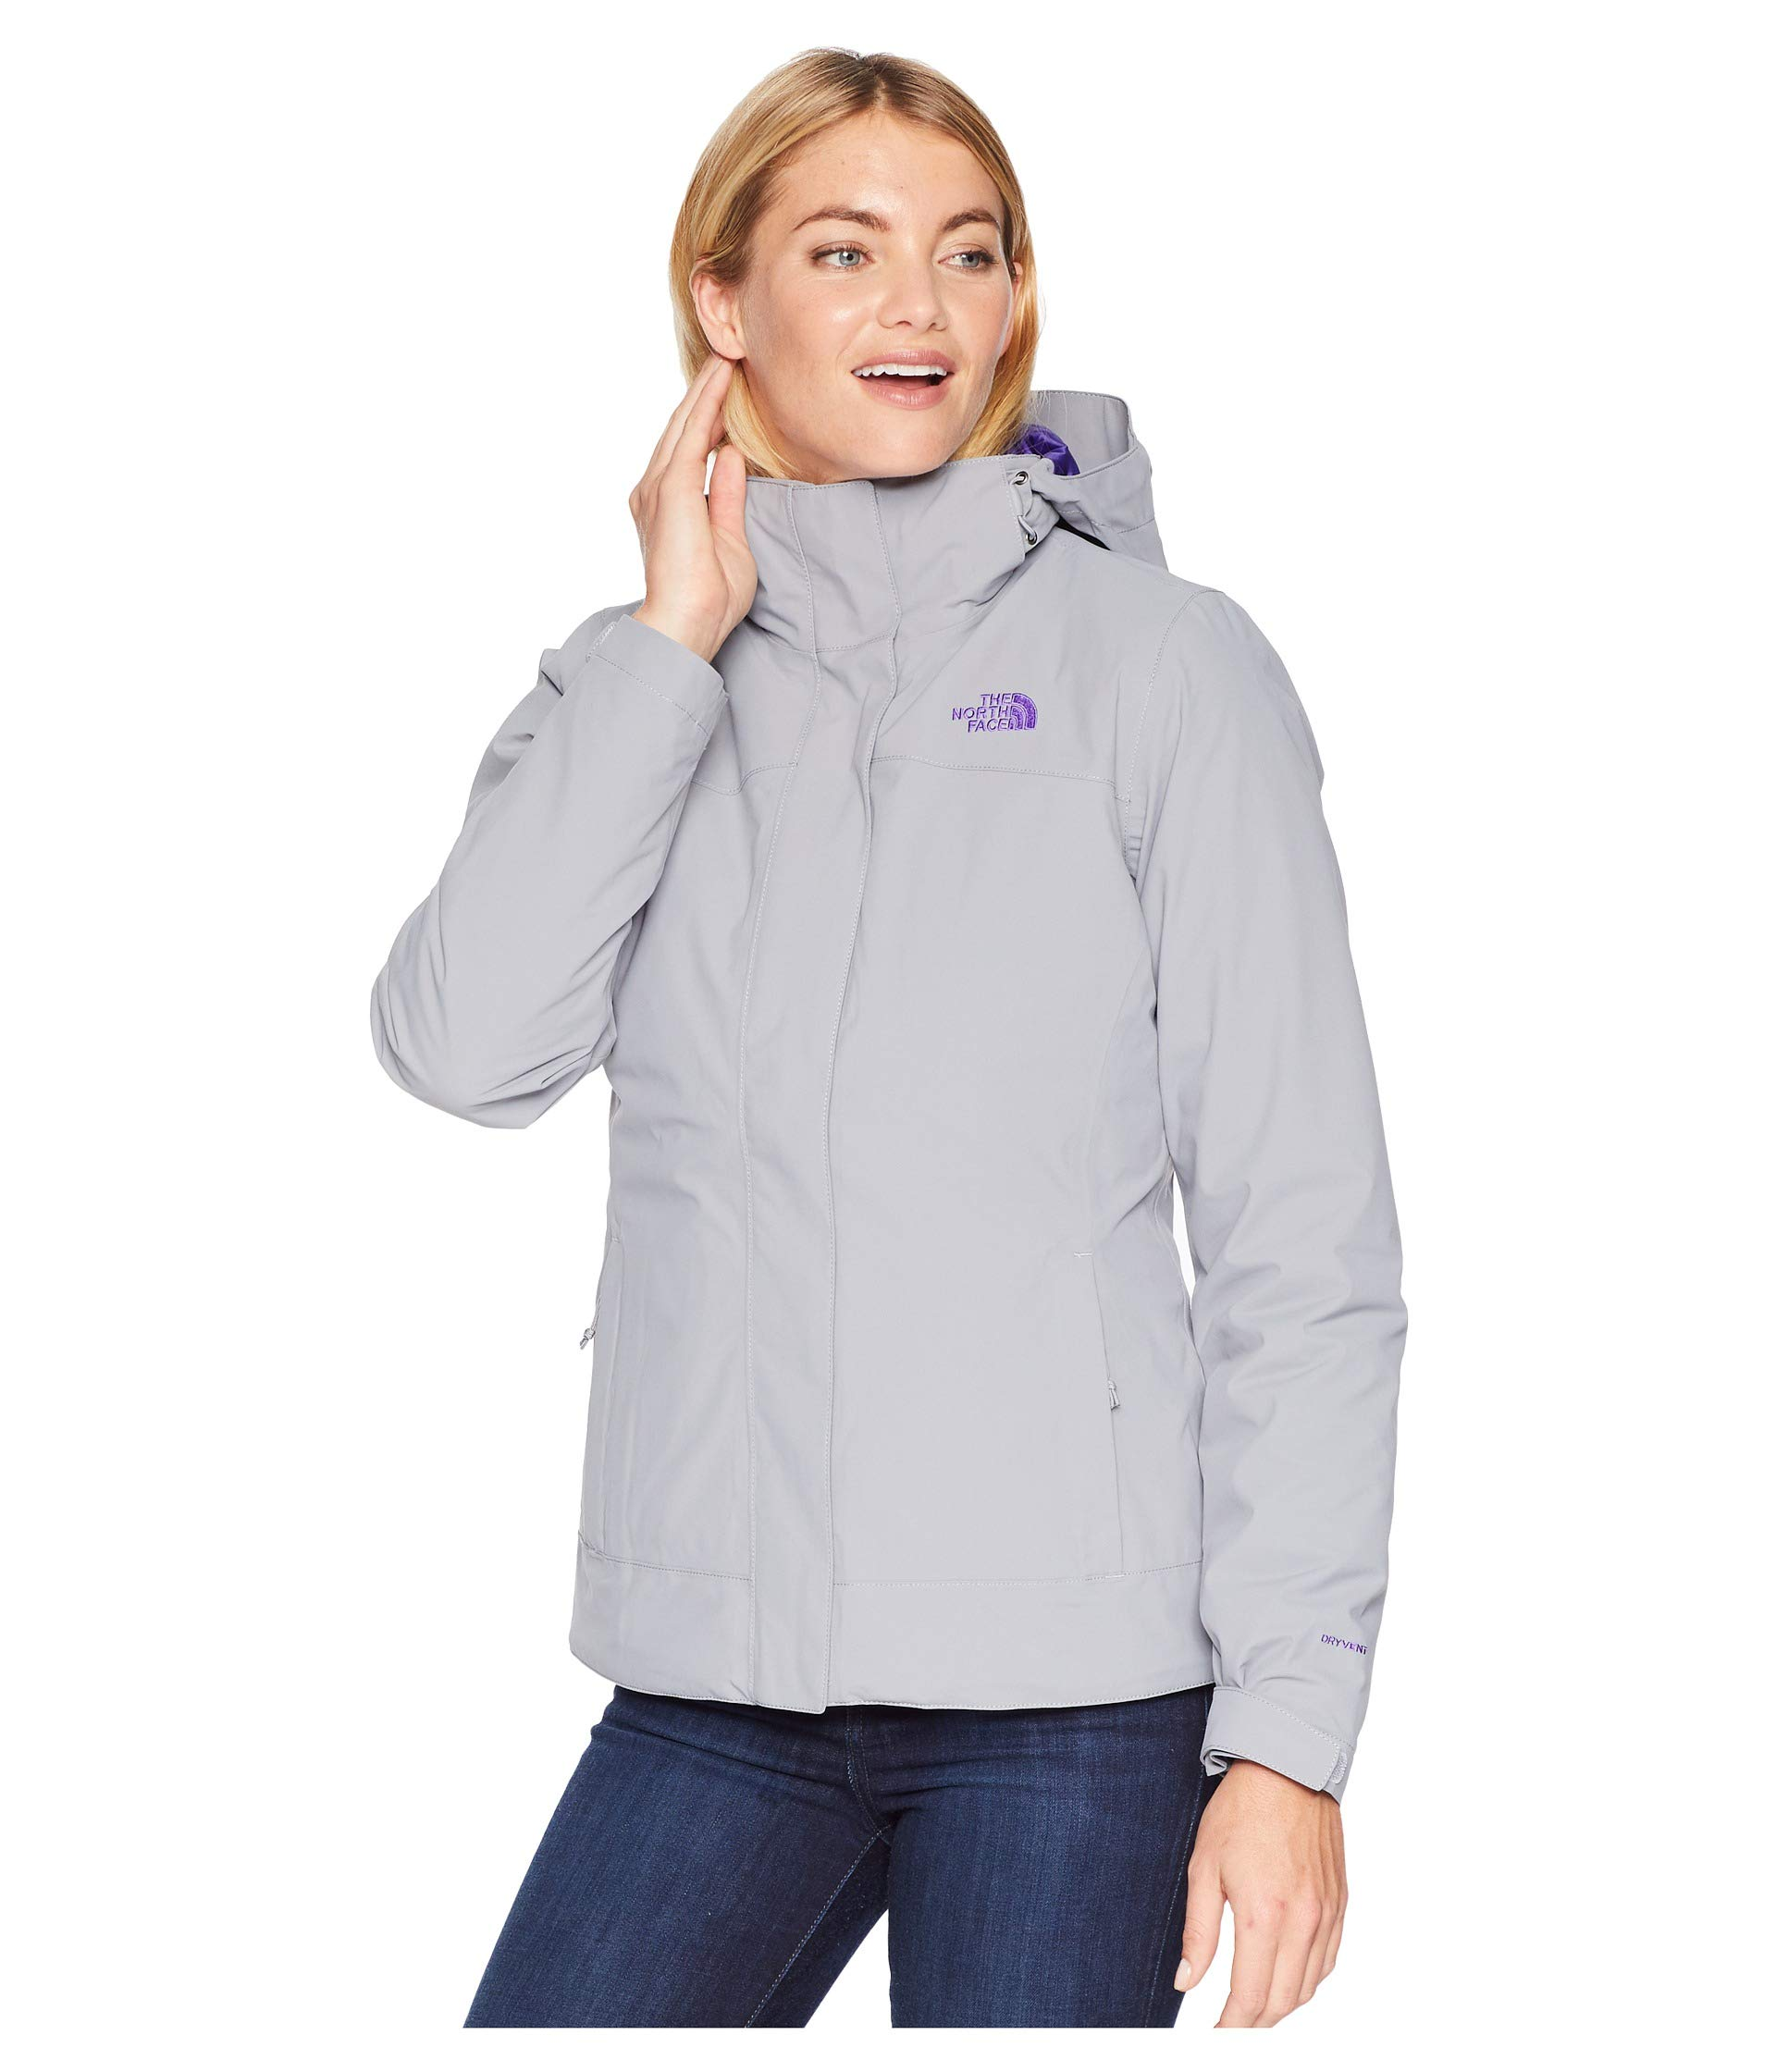 The North Face Women's Carto Triclimate Jacket - Mid Grey & Mid Grey - S by The North Face